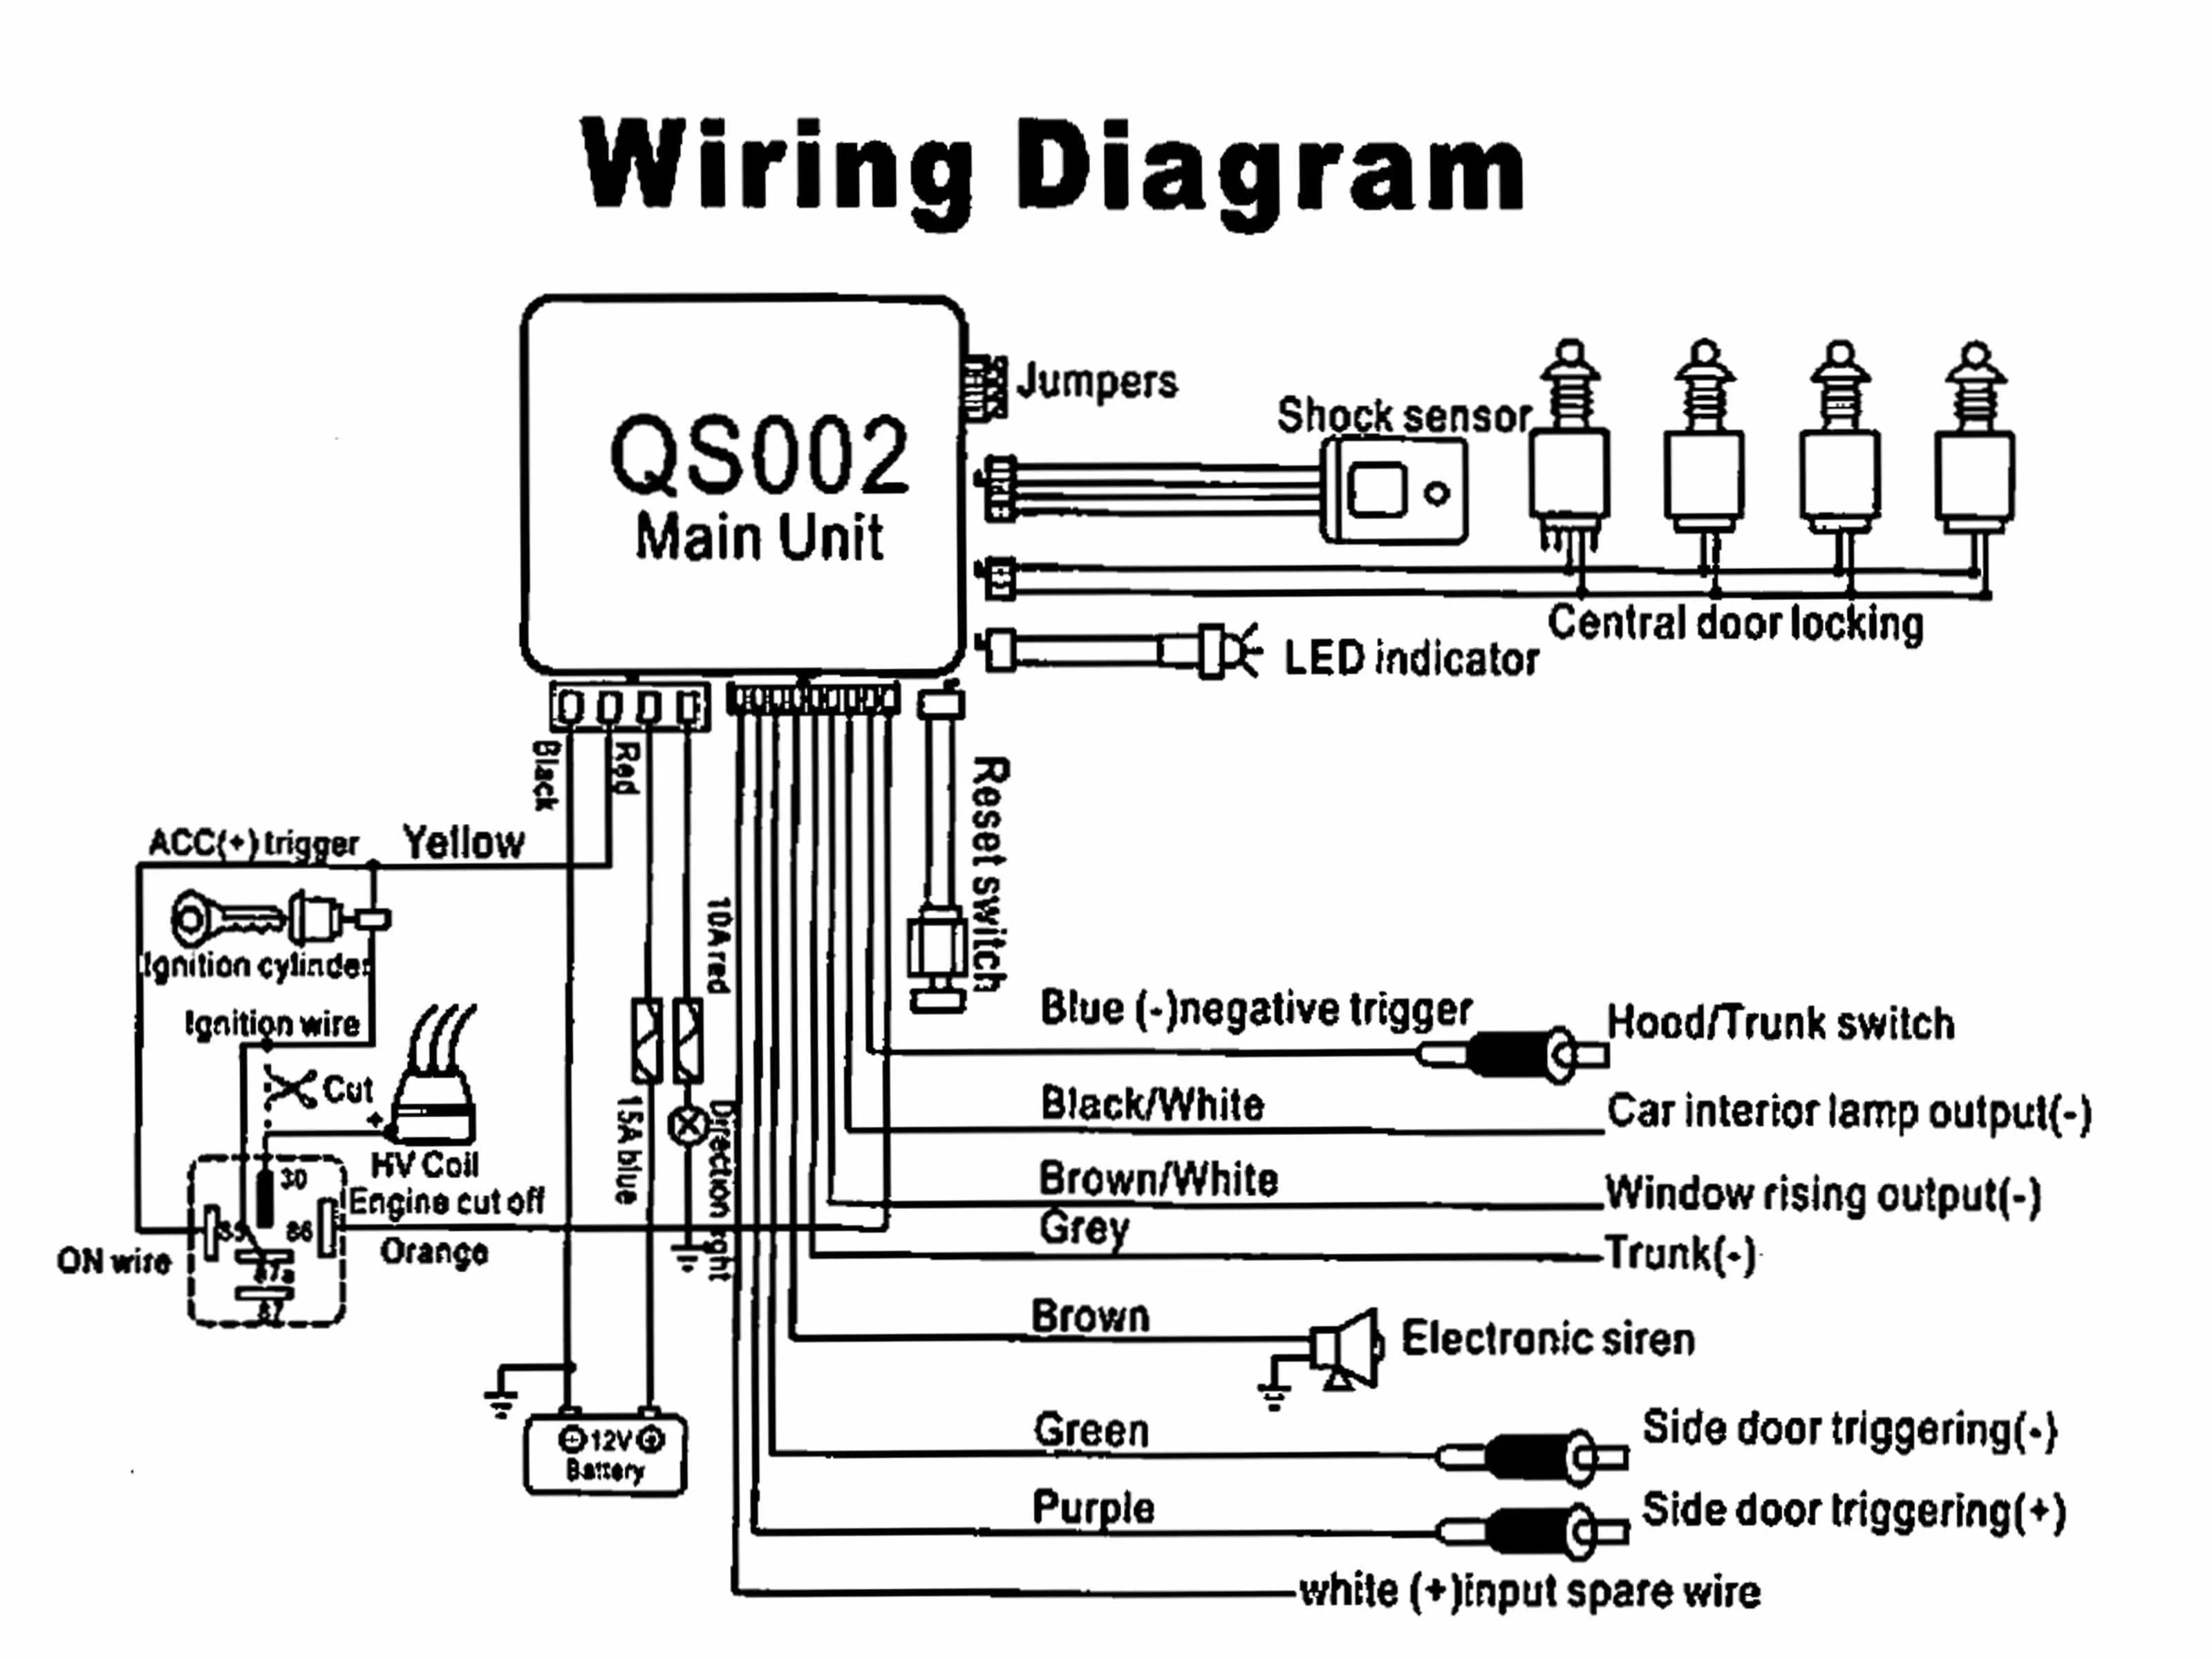 Luxury Clarion Xmd3 Wiring Diagram Pictures - The Wire - magnox.info